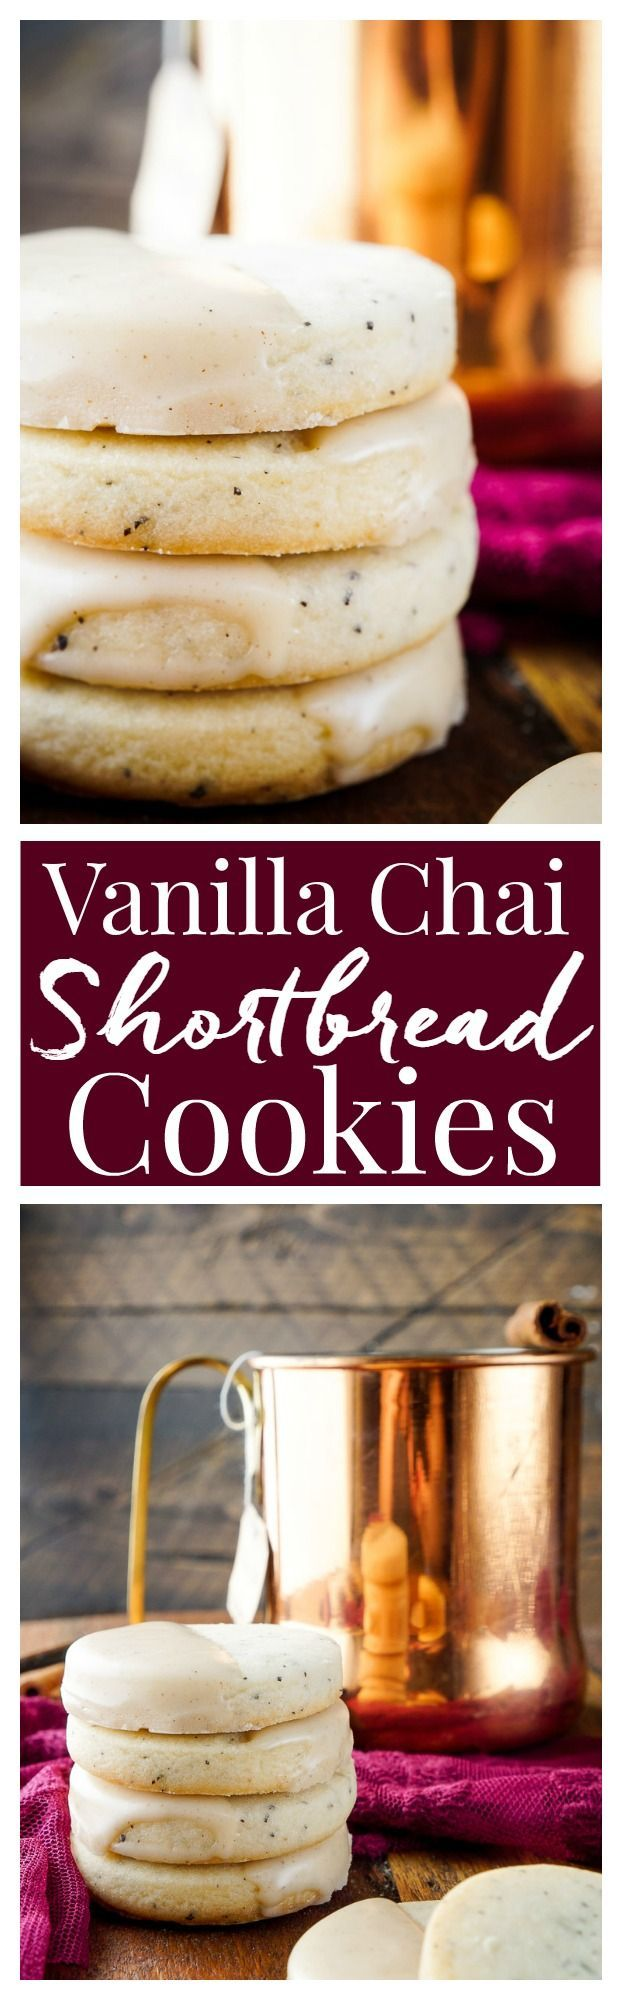 These Vanilla Chai Shortbread Cookies are simple with a little spice and a whole lot of cozy! Made with loose tea leaves, flour, butter, and sugar, these cookies are easy and fast to make.